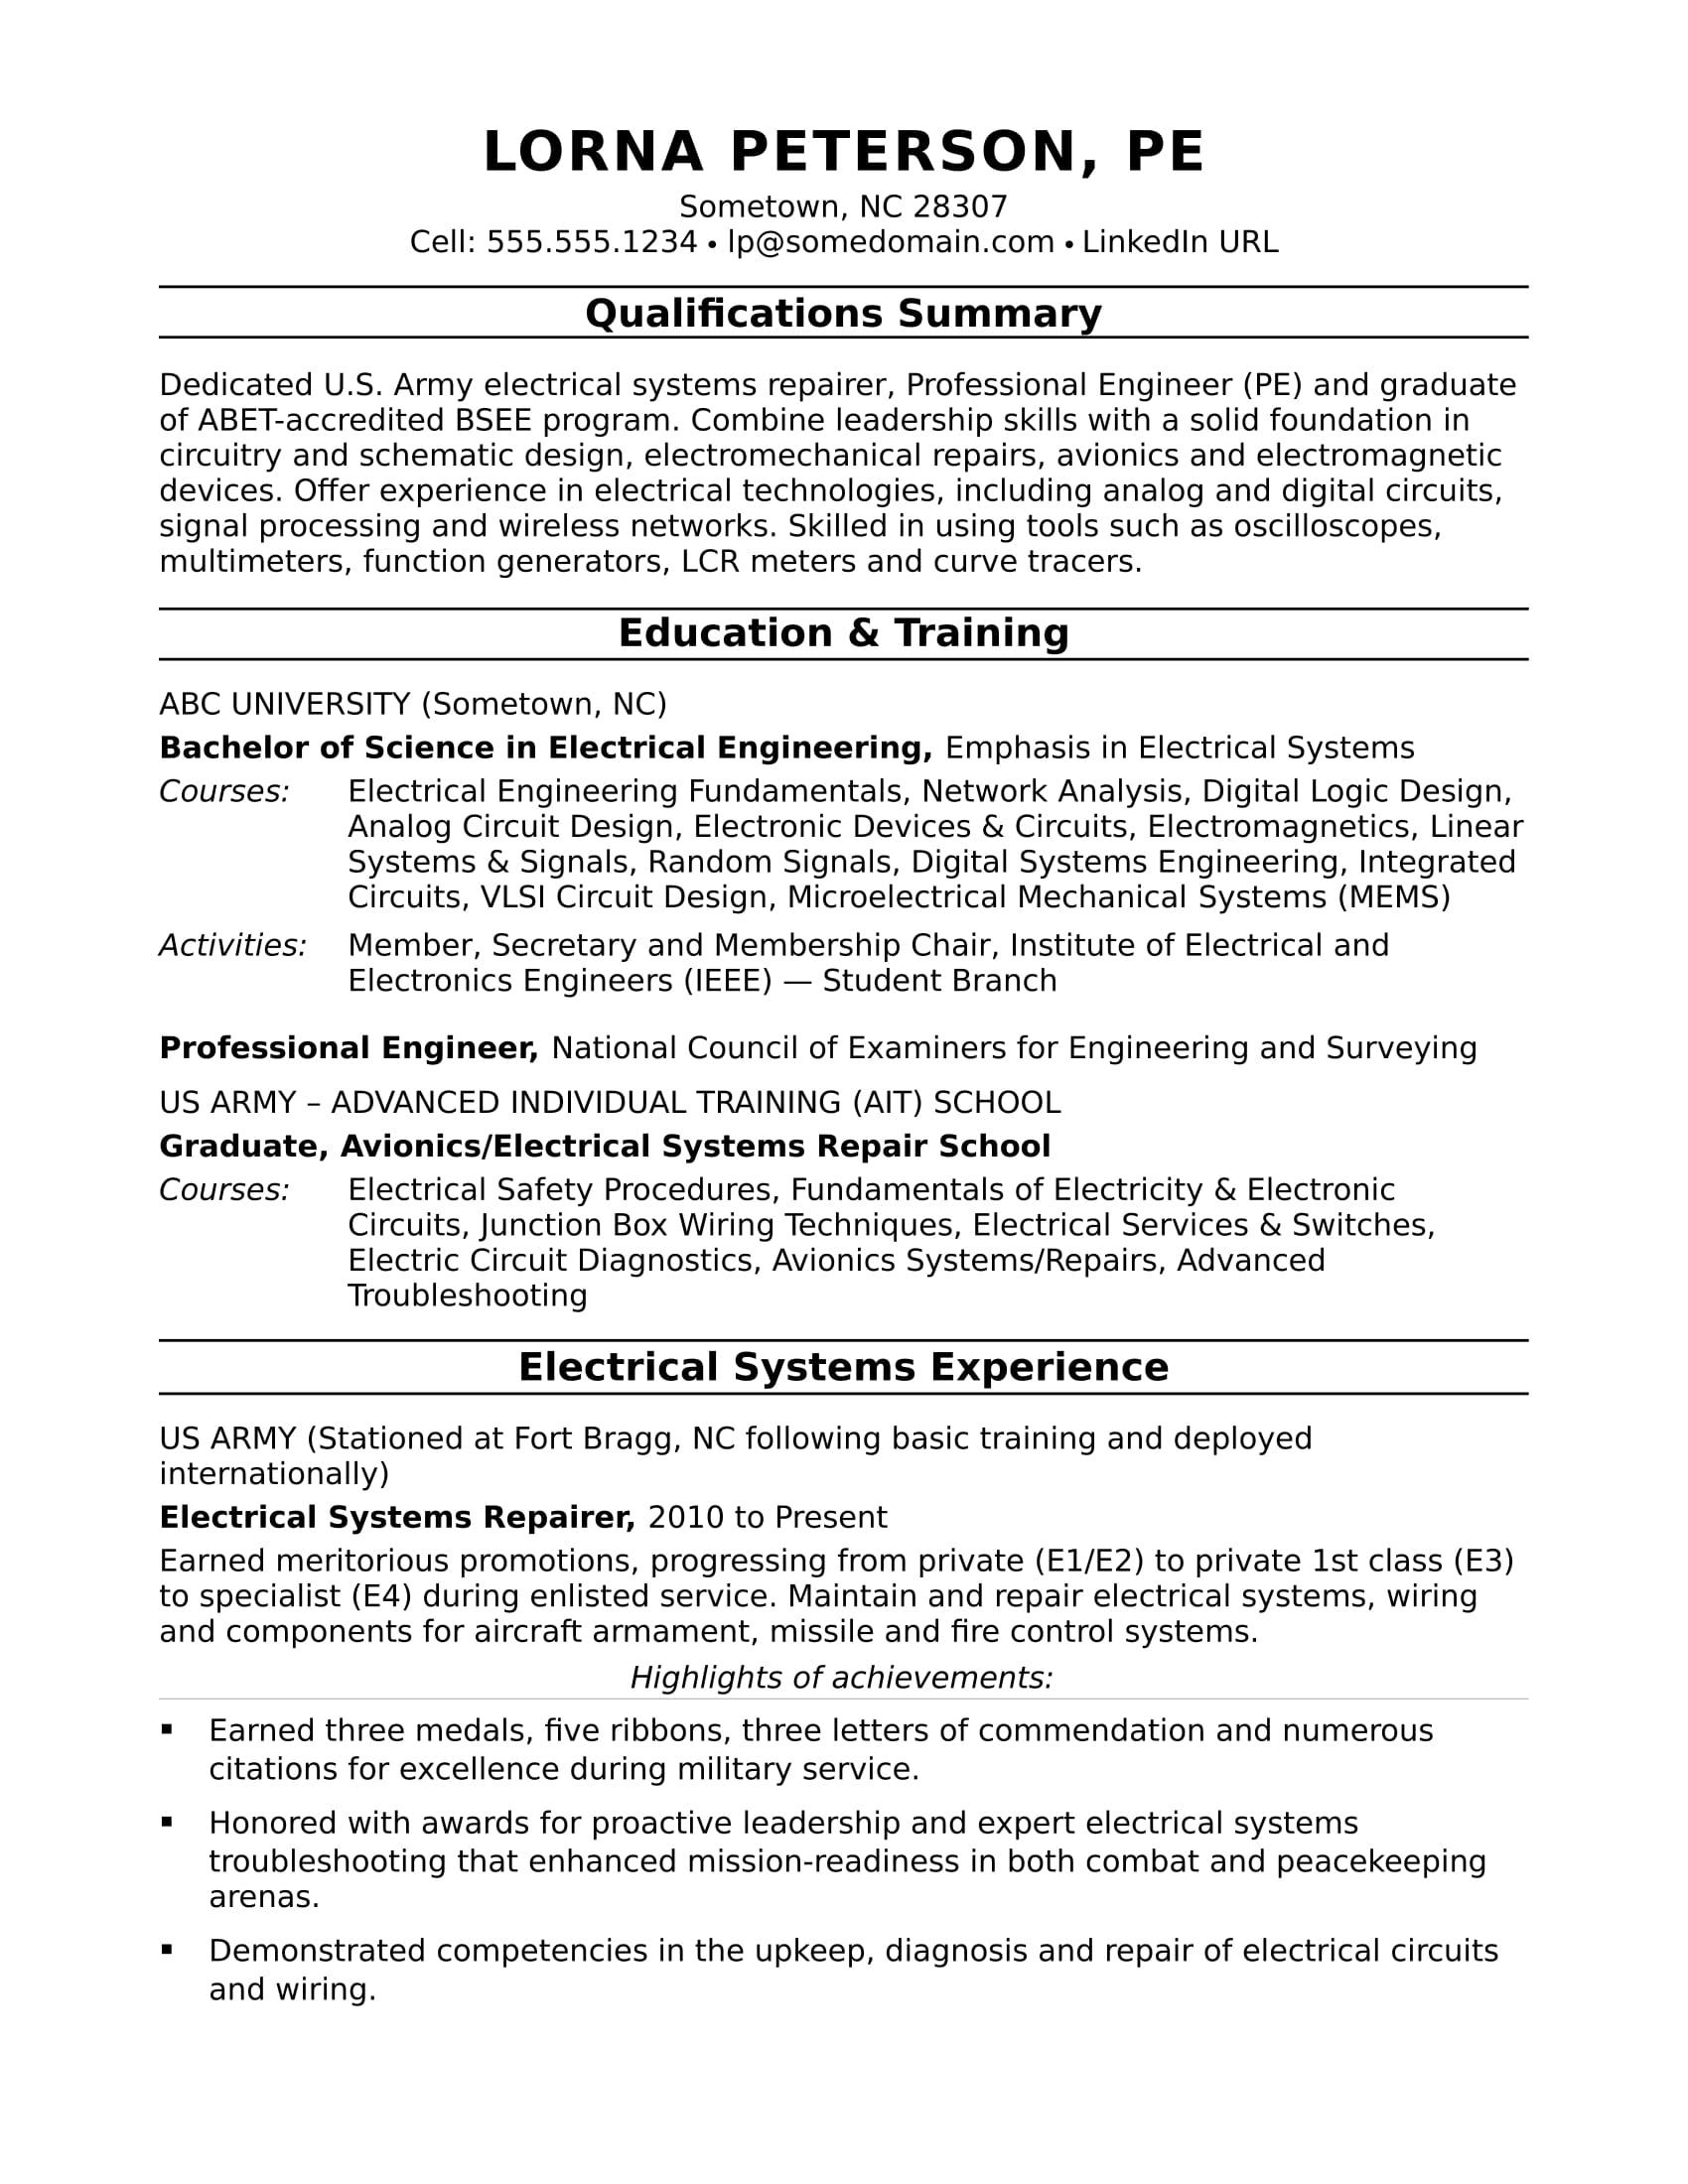 22 Fresh Electrical Engineering Resume Sample For Freshers for Images